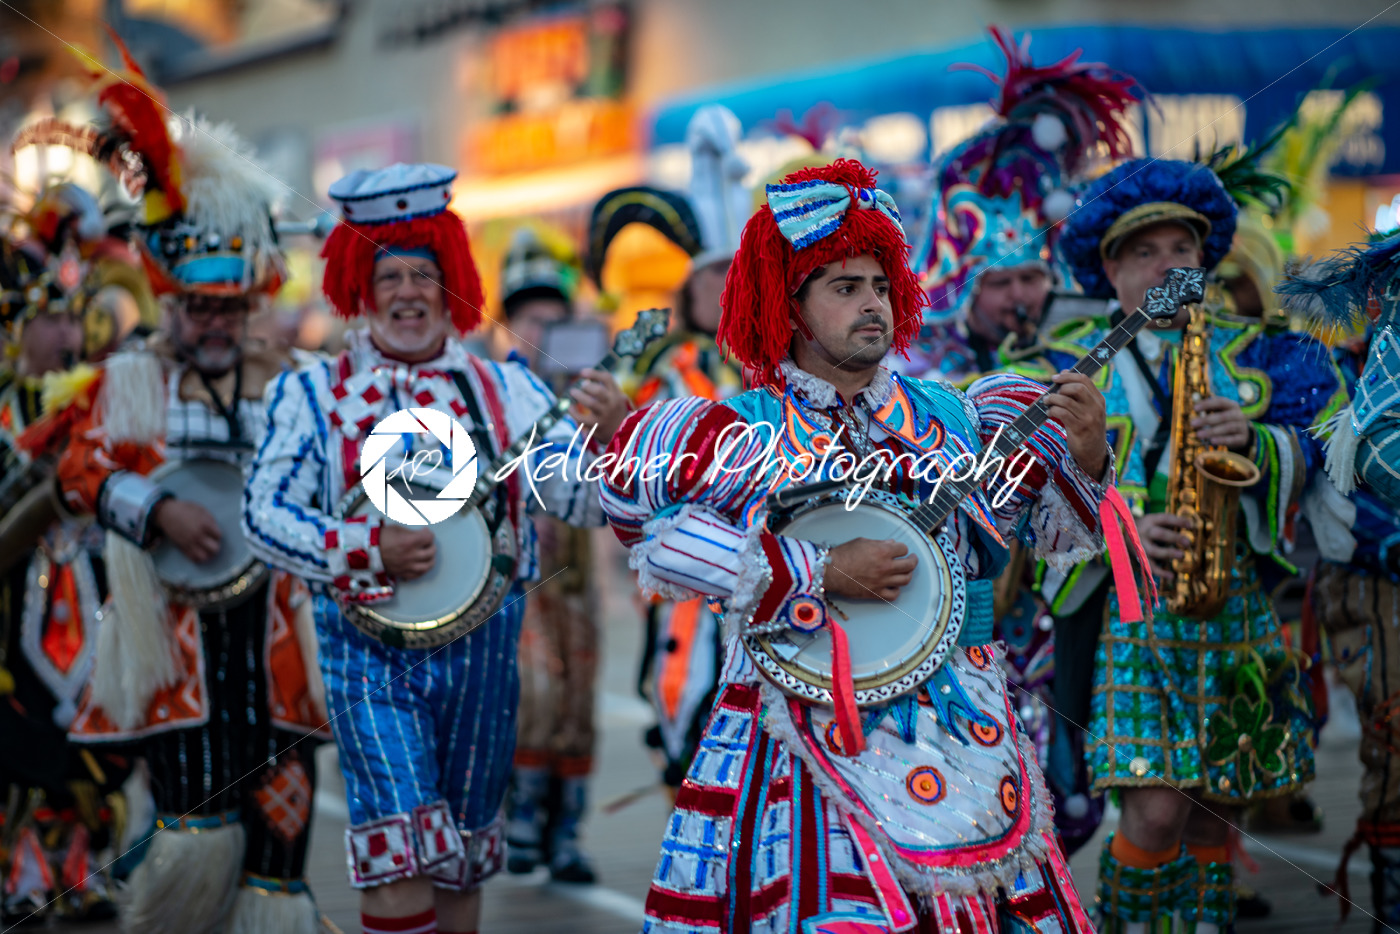 Ocean City, NJ – June 10, 2018: Avalon String Band performs on the Ocean City NJ boardwalk - Kelleher Photography Store